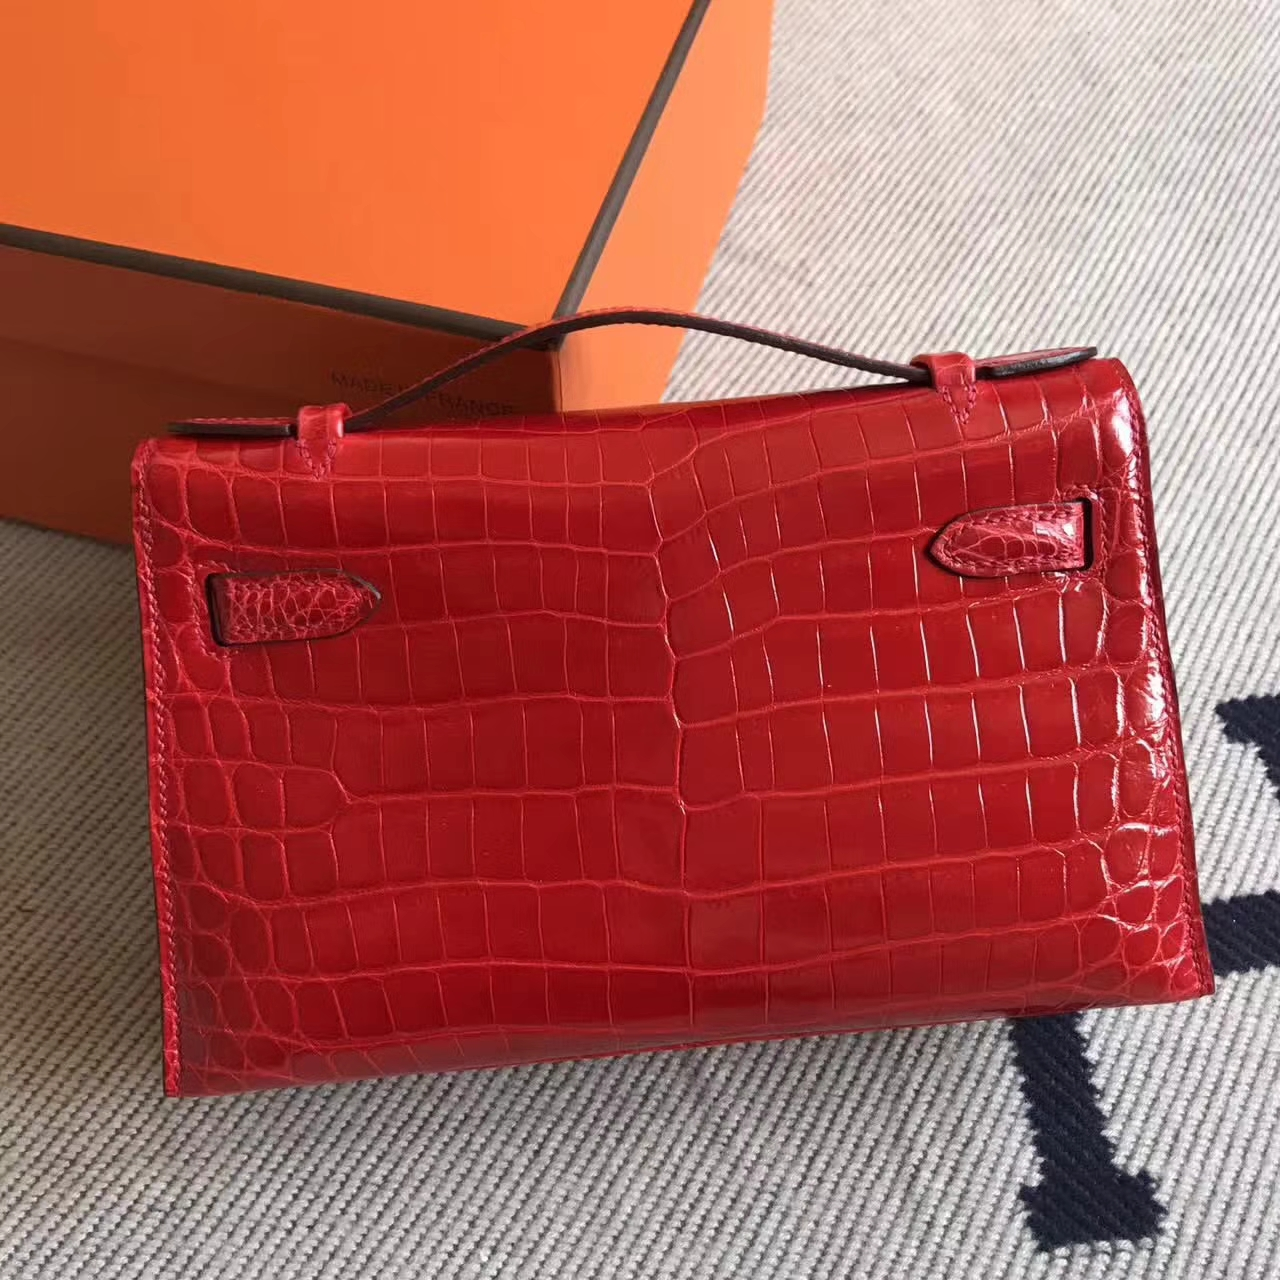 Wholesale Hermes CK95 Braise Crocodile Shiny Leather Minikelly Clutch Bag 22cm